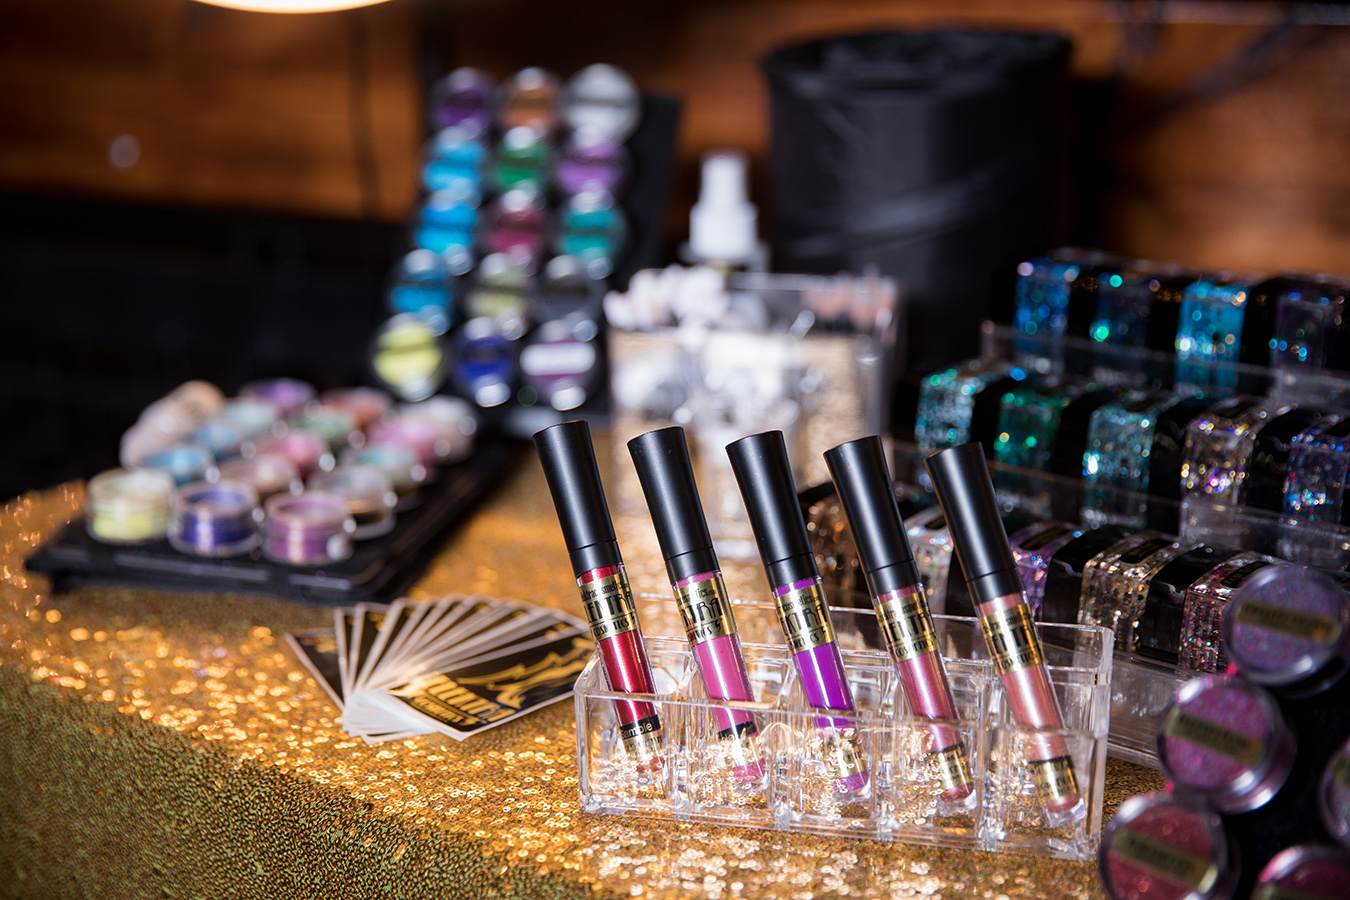 Glitter makeup available on the Glitter Buffet. Photo: Brian Jarreau